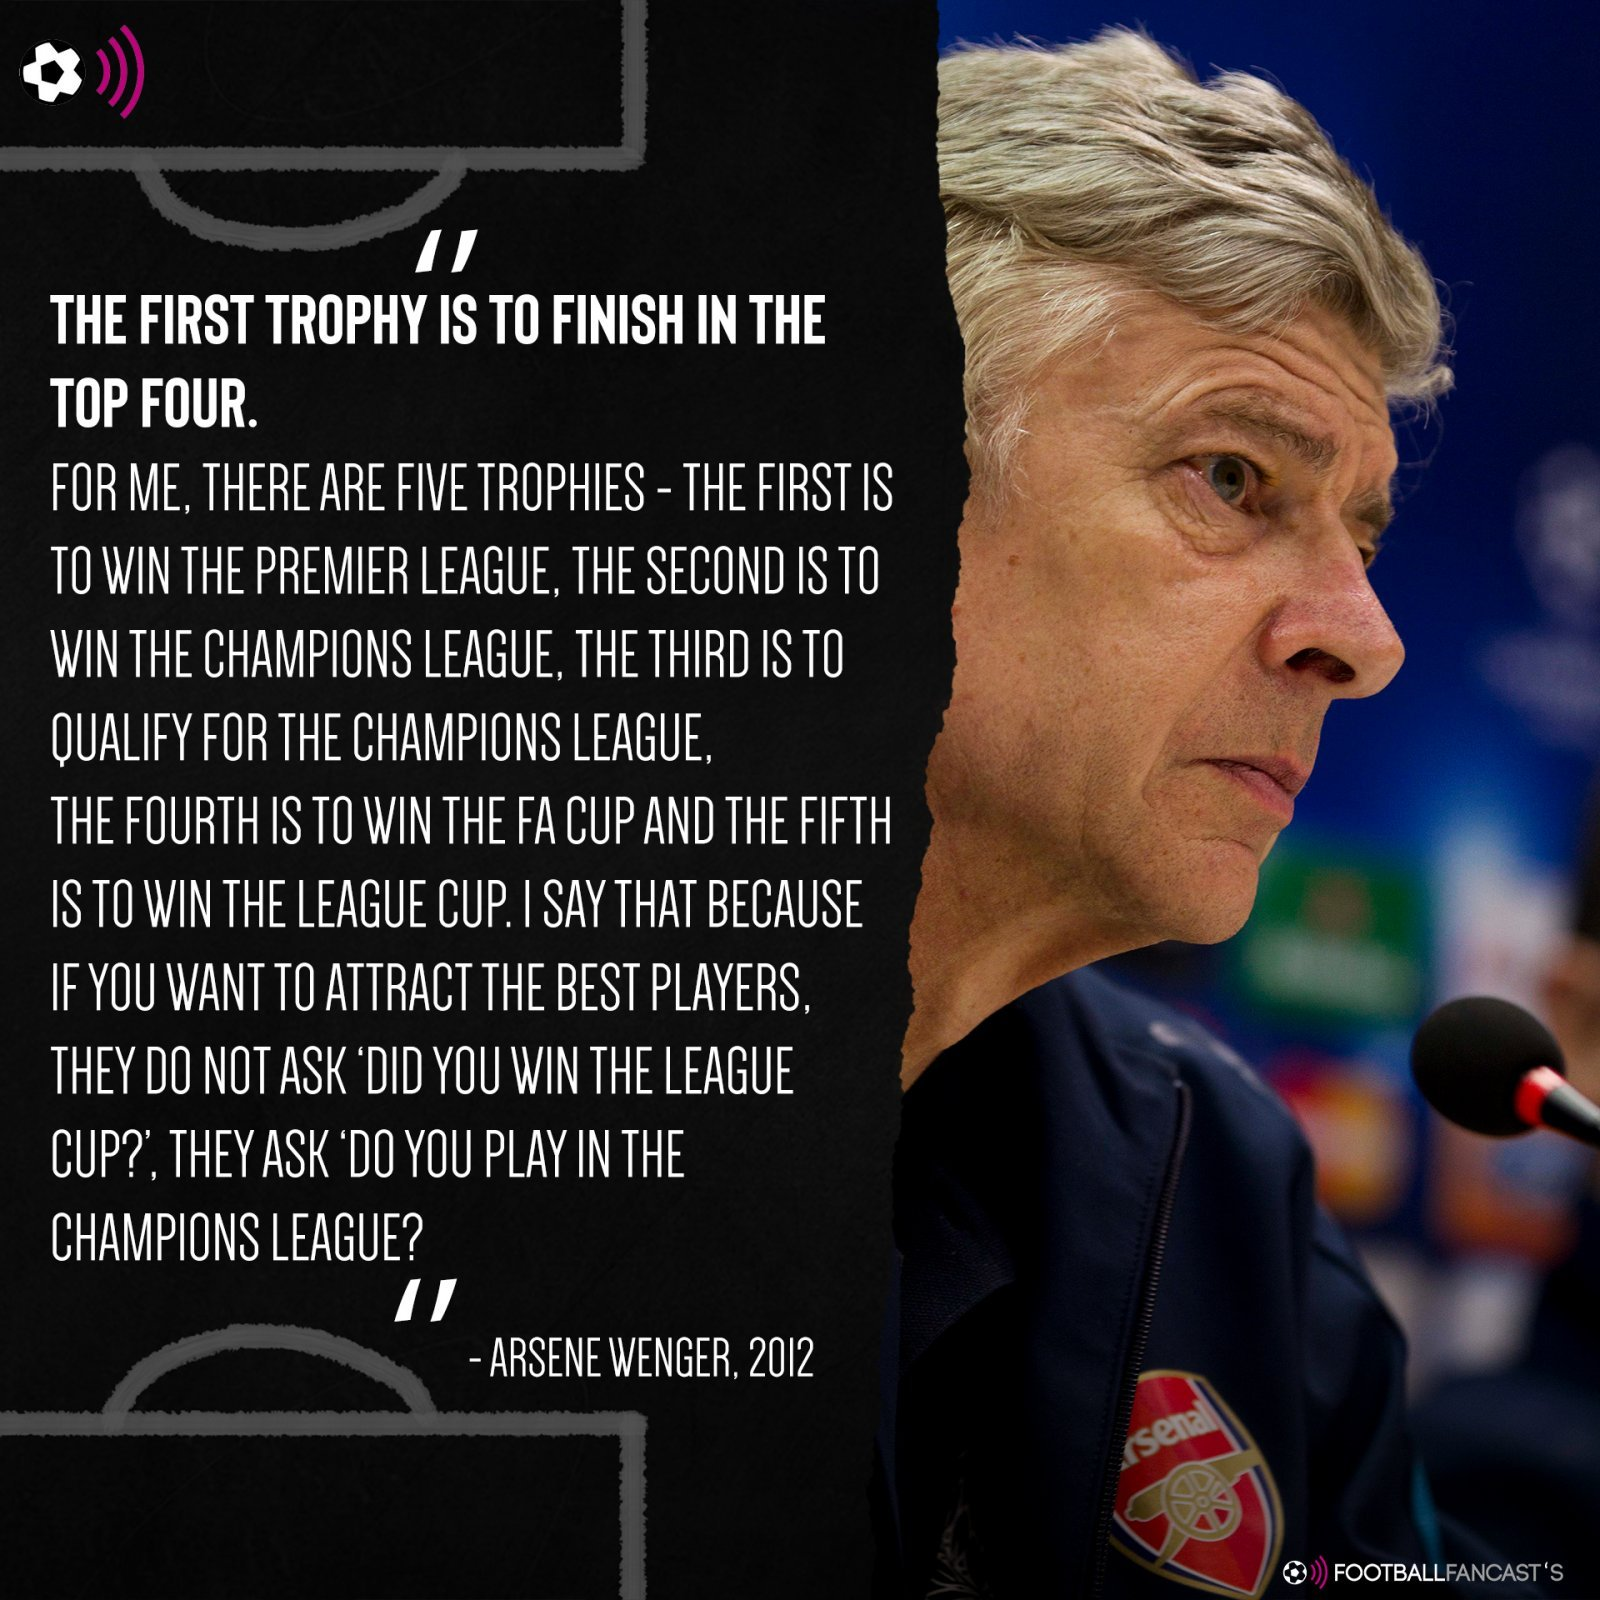 Arsene Wenger quote from 2012